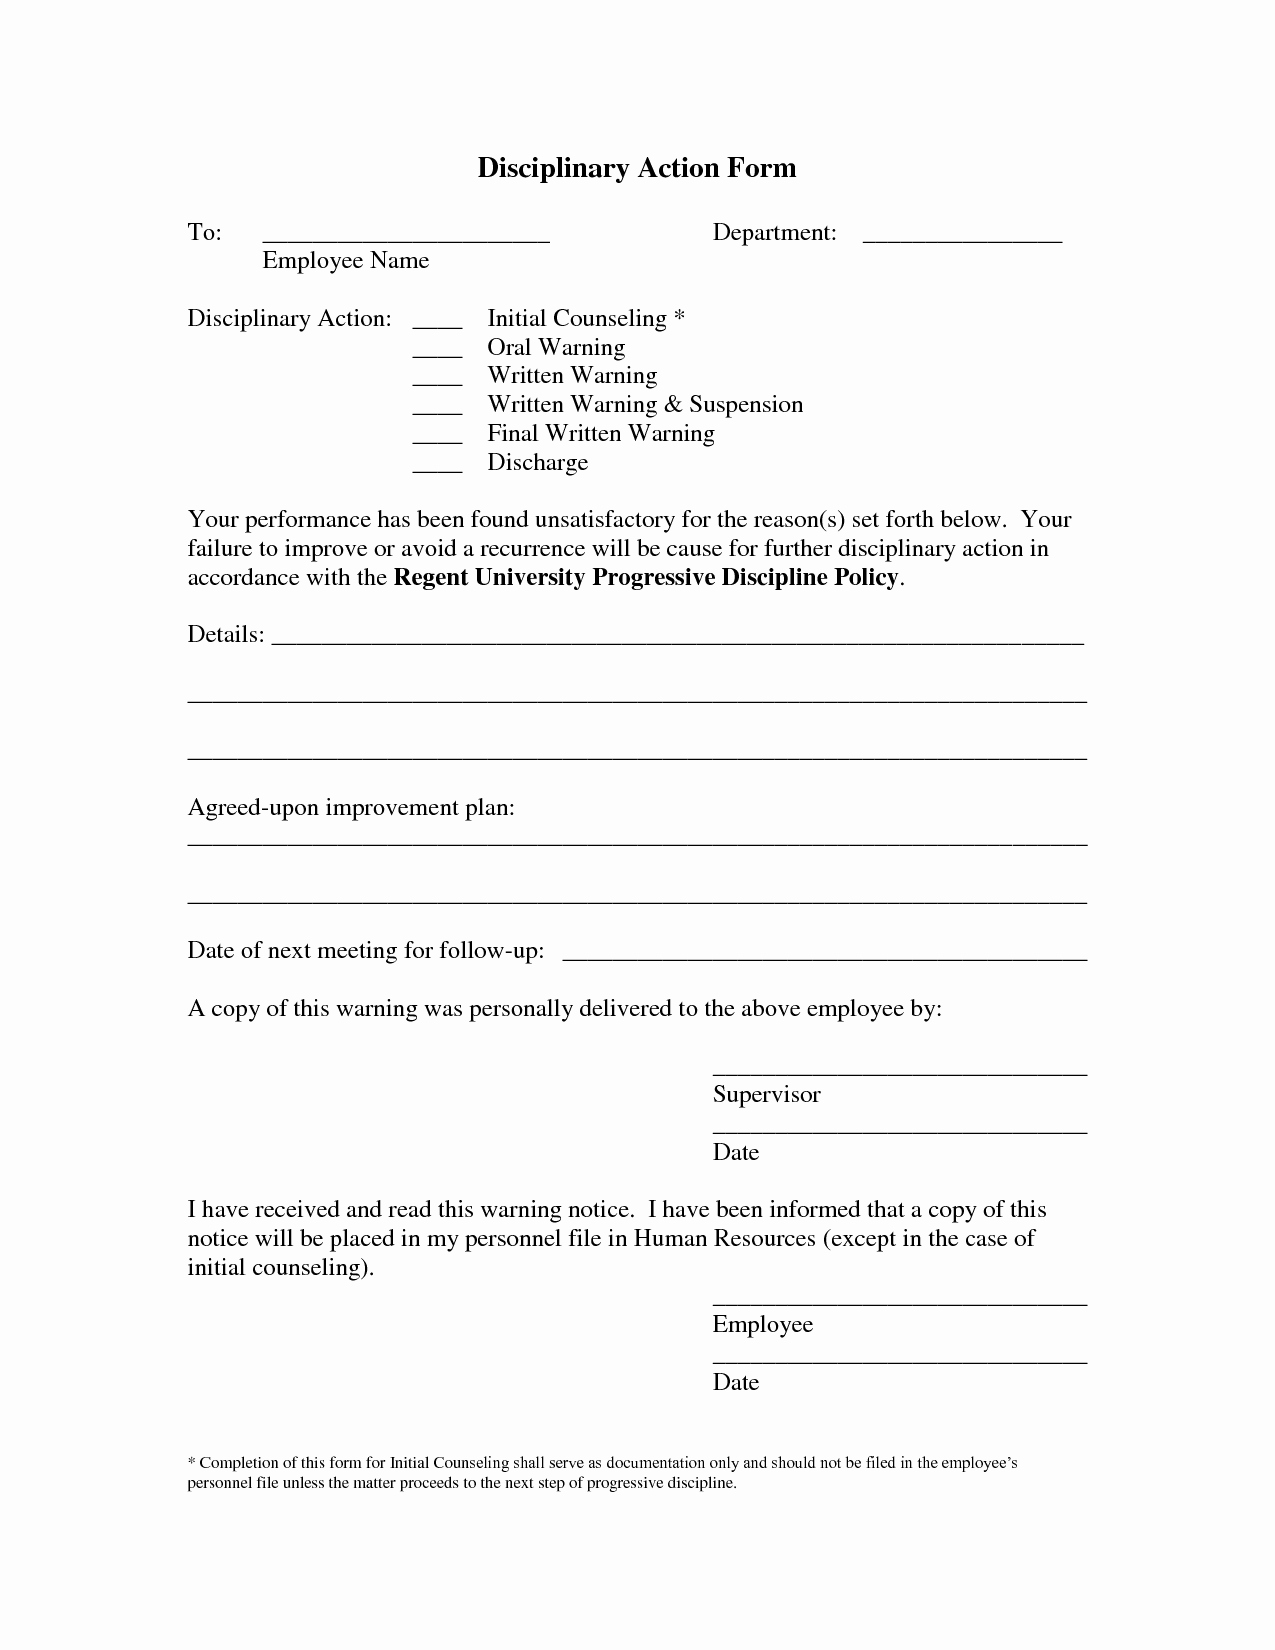 Sample Write Up for Employee Elegant Employee Write Up Template Free Google Search